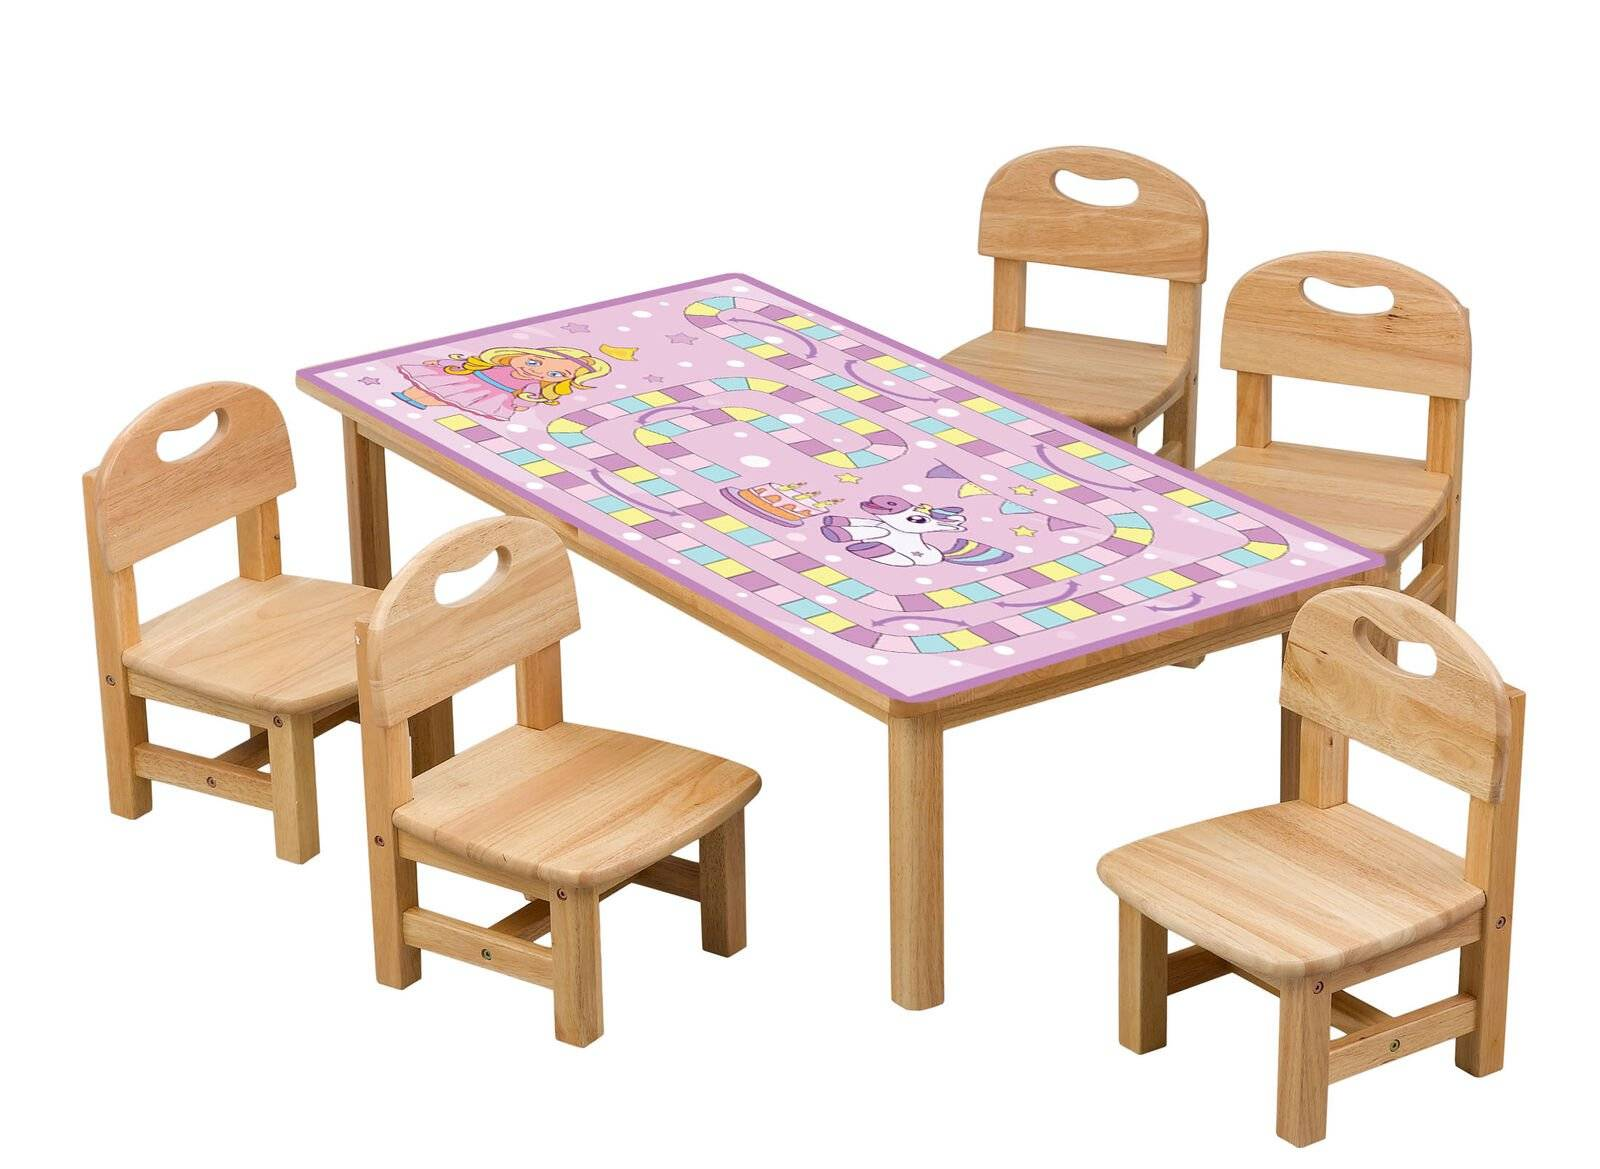 Pink Game Board For Kids Laminated Self Adhesive Vinyl Table Desk Art Décor Cover